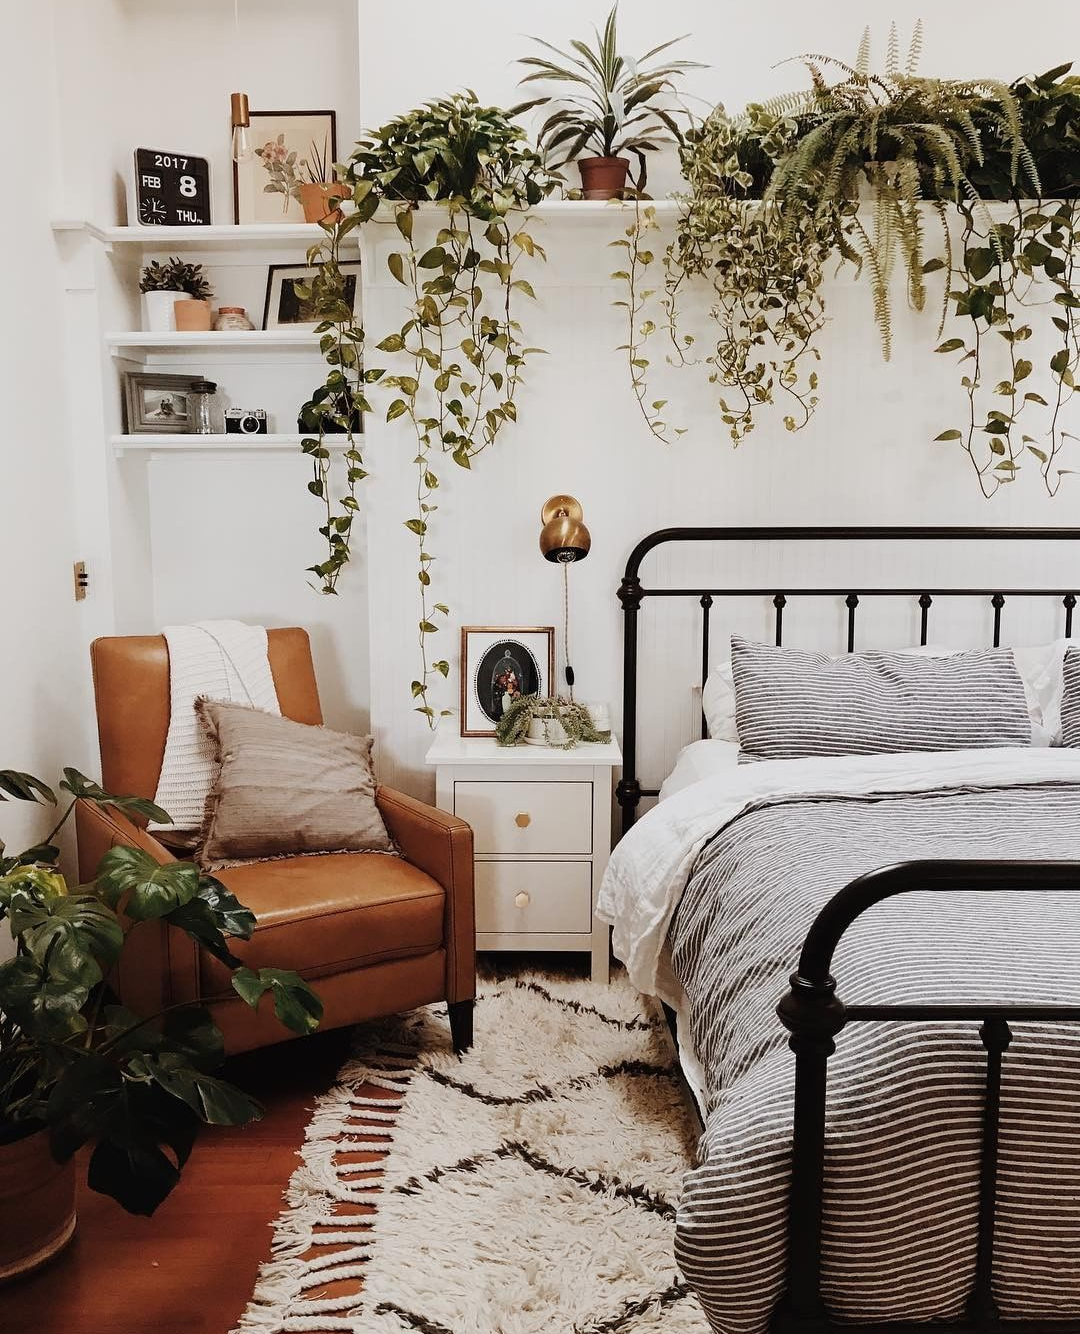 Room Decor Bedroom Decor Und: Plant Life, Plants In Bedroom, Home Decor, Cute Bedrooms